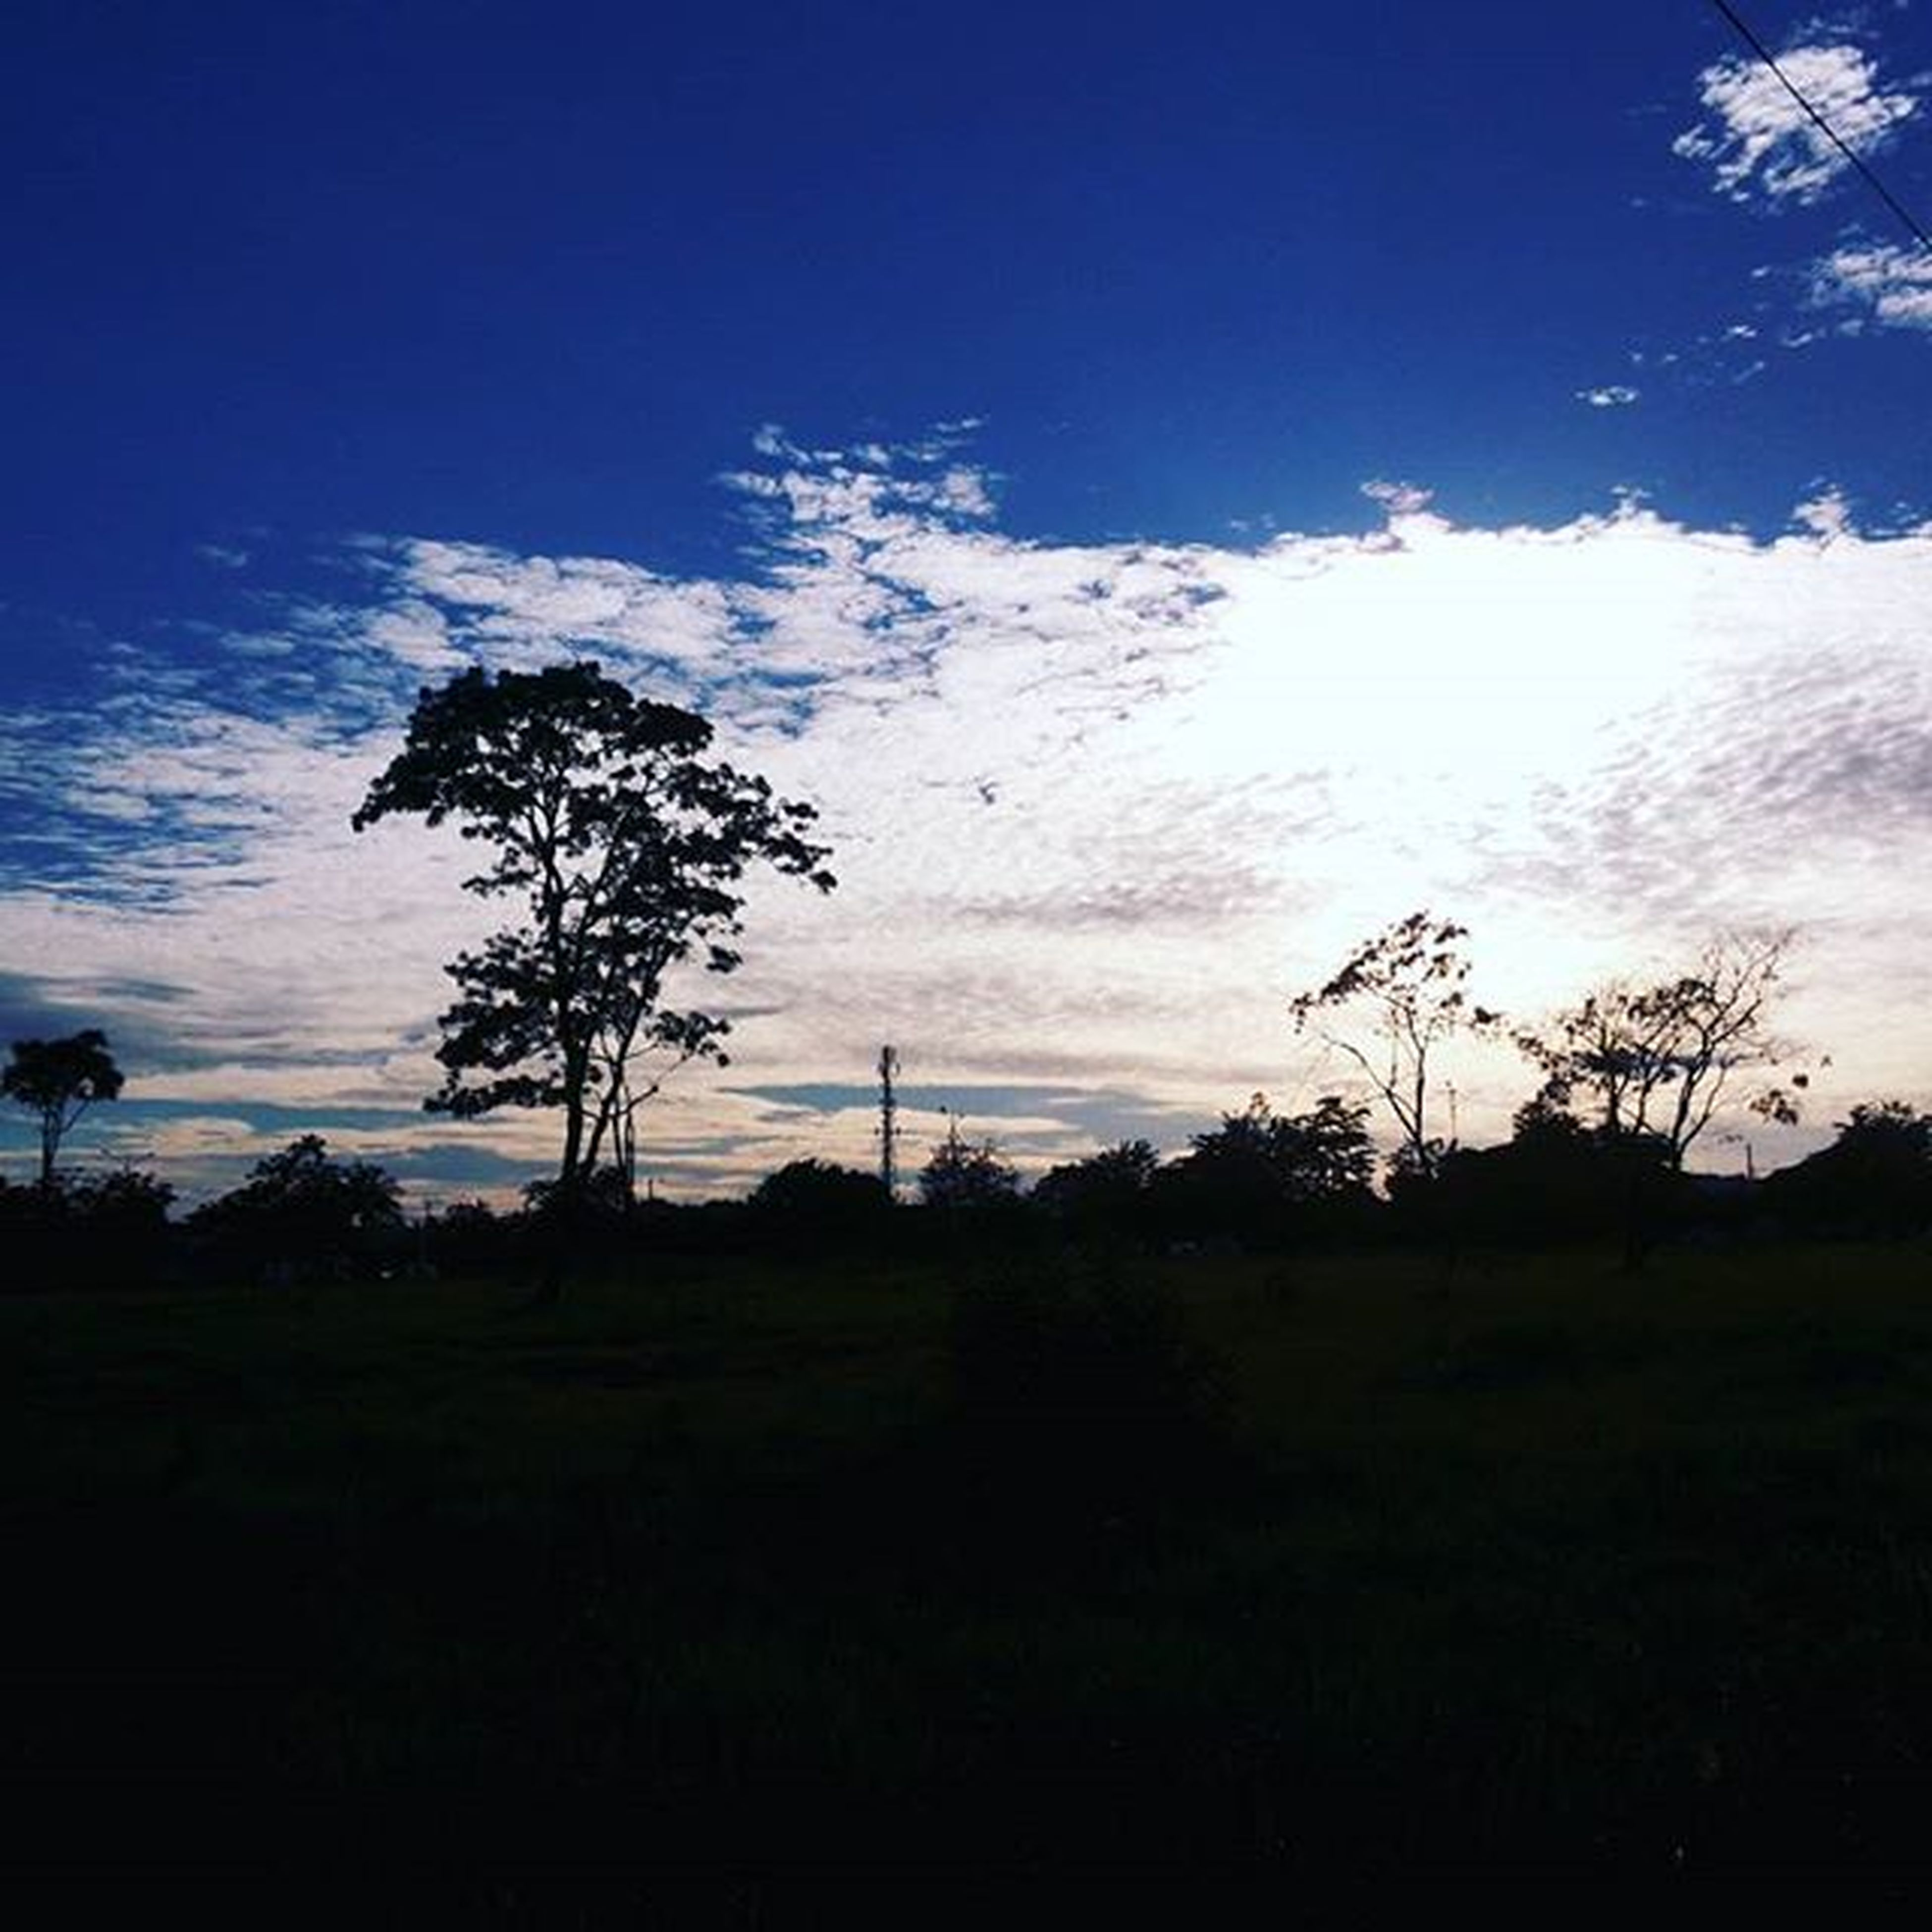 nature, tree, sunset, silhouette, social issues, landscape, sky, agriculture, outdoors, beauty in nature, no people, day